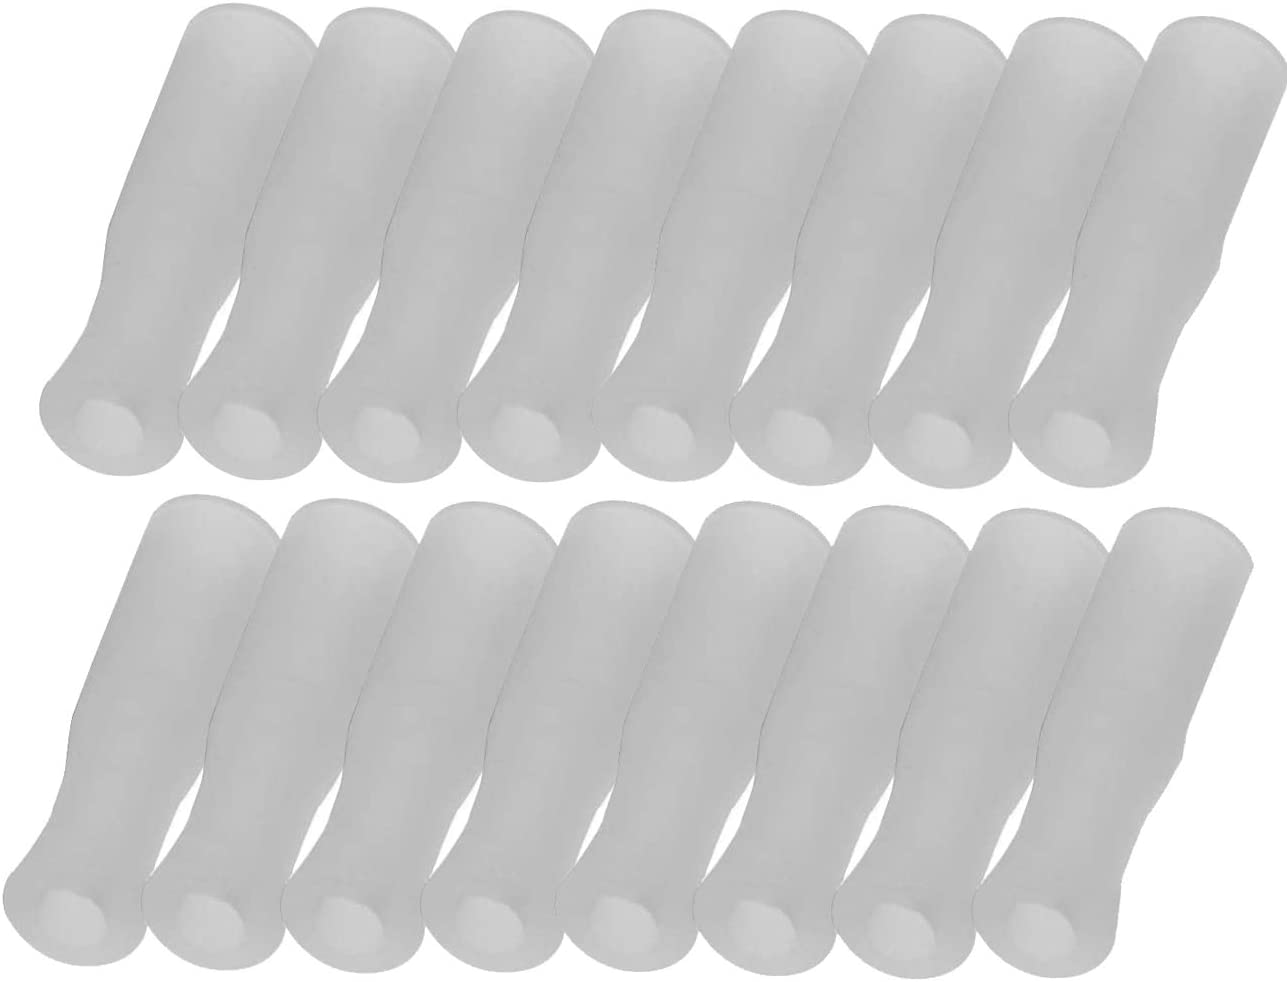 Mini Skater 16Pcs Silicone Straws Tips Food Grade Reusable Anti-Scald/Cold Straws Cover Fit for 1/4 Inch Wide(6mm Out diameter) Stainless Steel Straws (White)